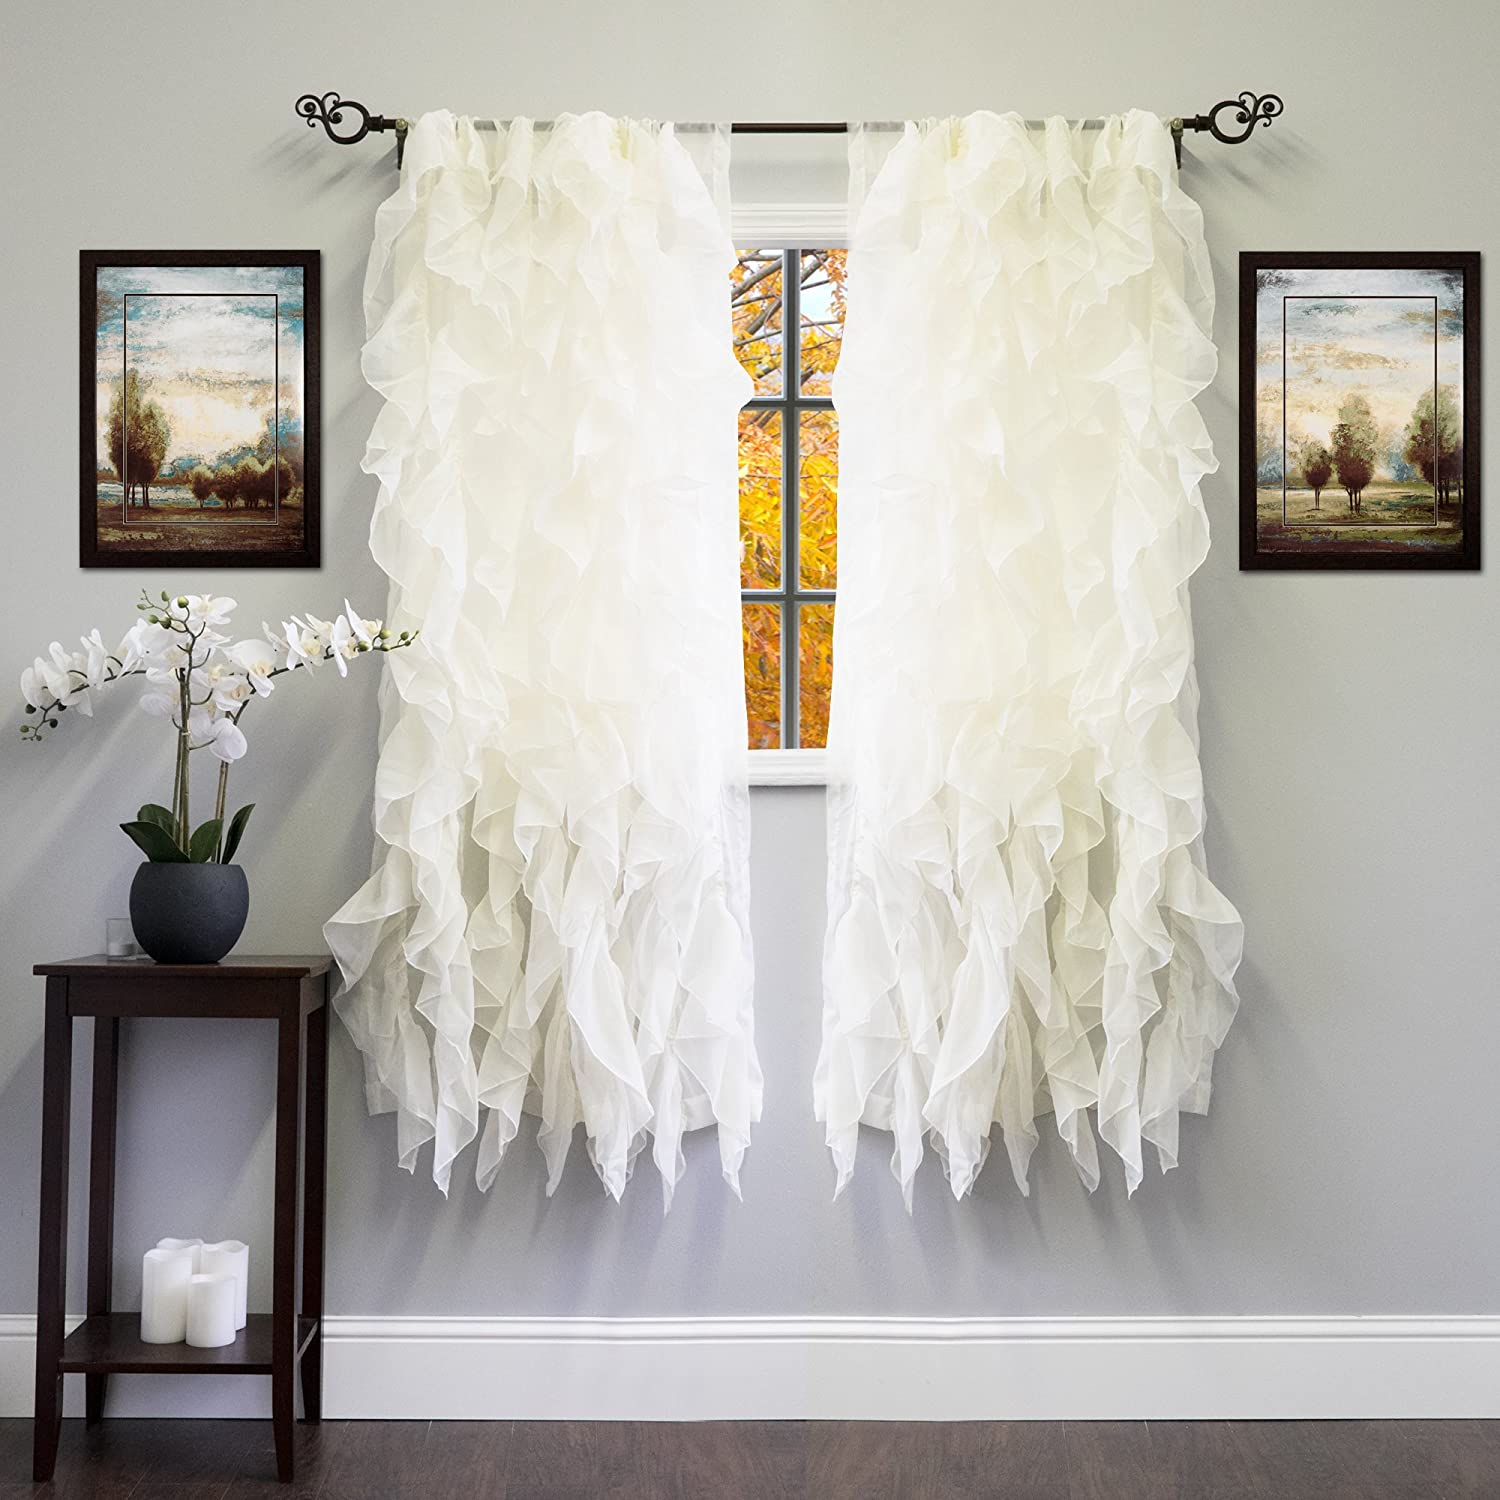 63 x 50 Camel Sweet Home Collection 2 Pack Window Panel Sheer Voile Vertical Ruffled Waterfall Curtains